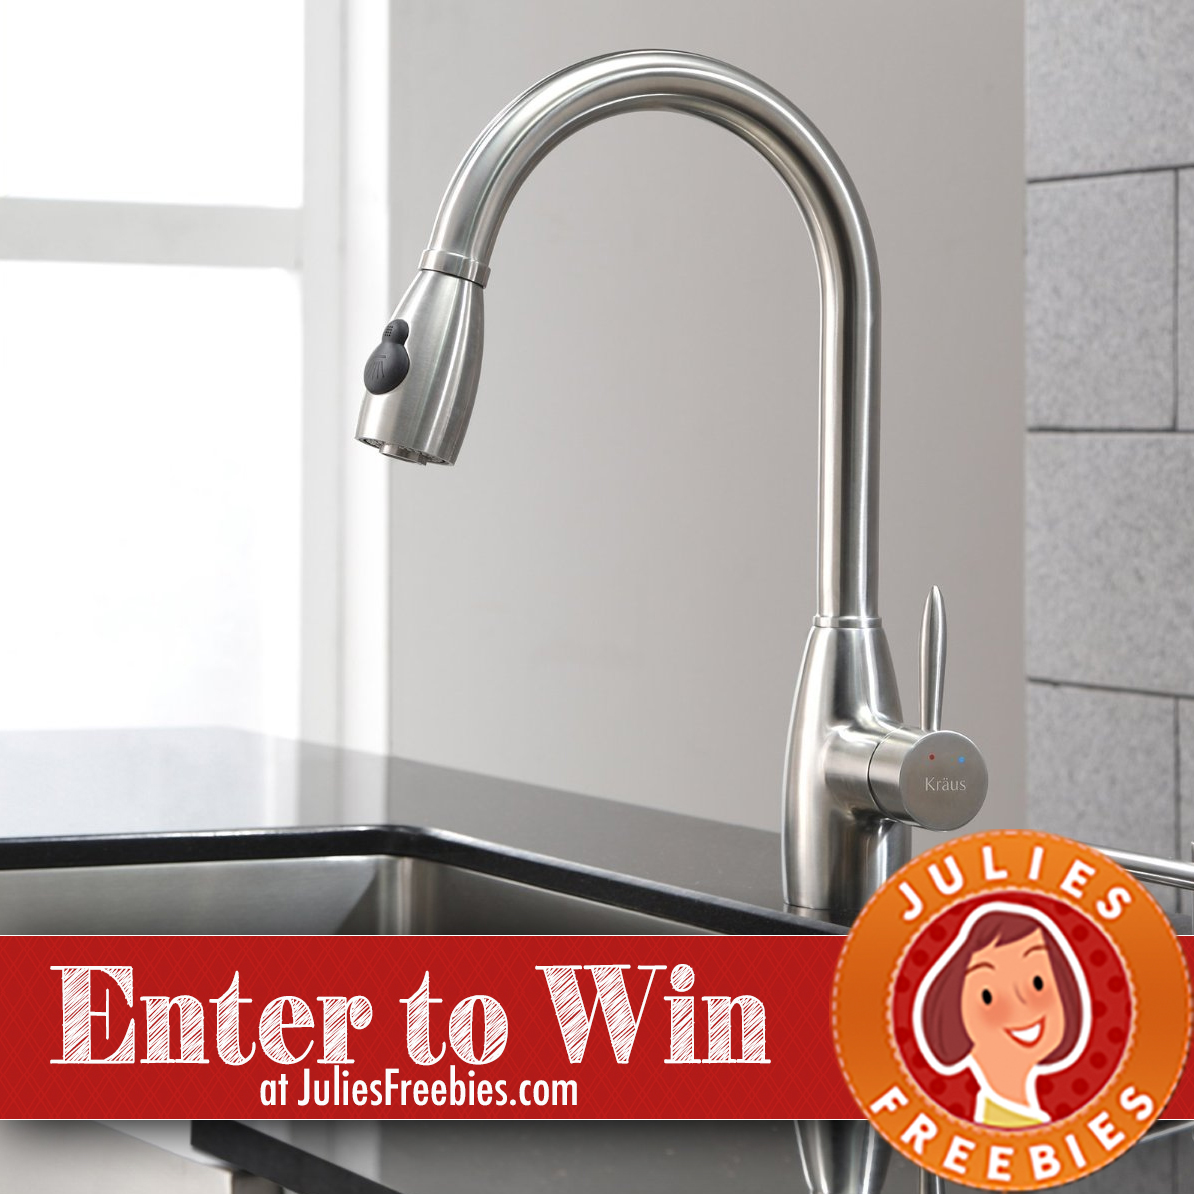 Here is an offer where you can enter to win the krause kitchen faucet giveaway from build